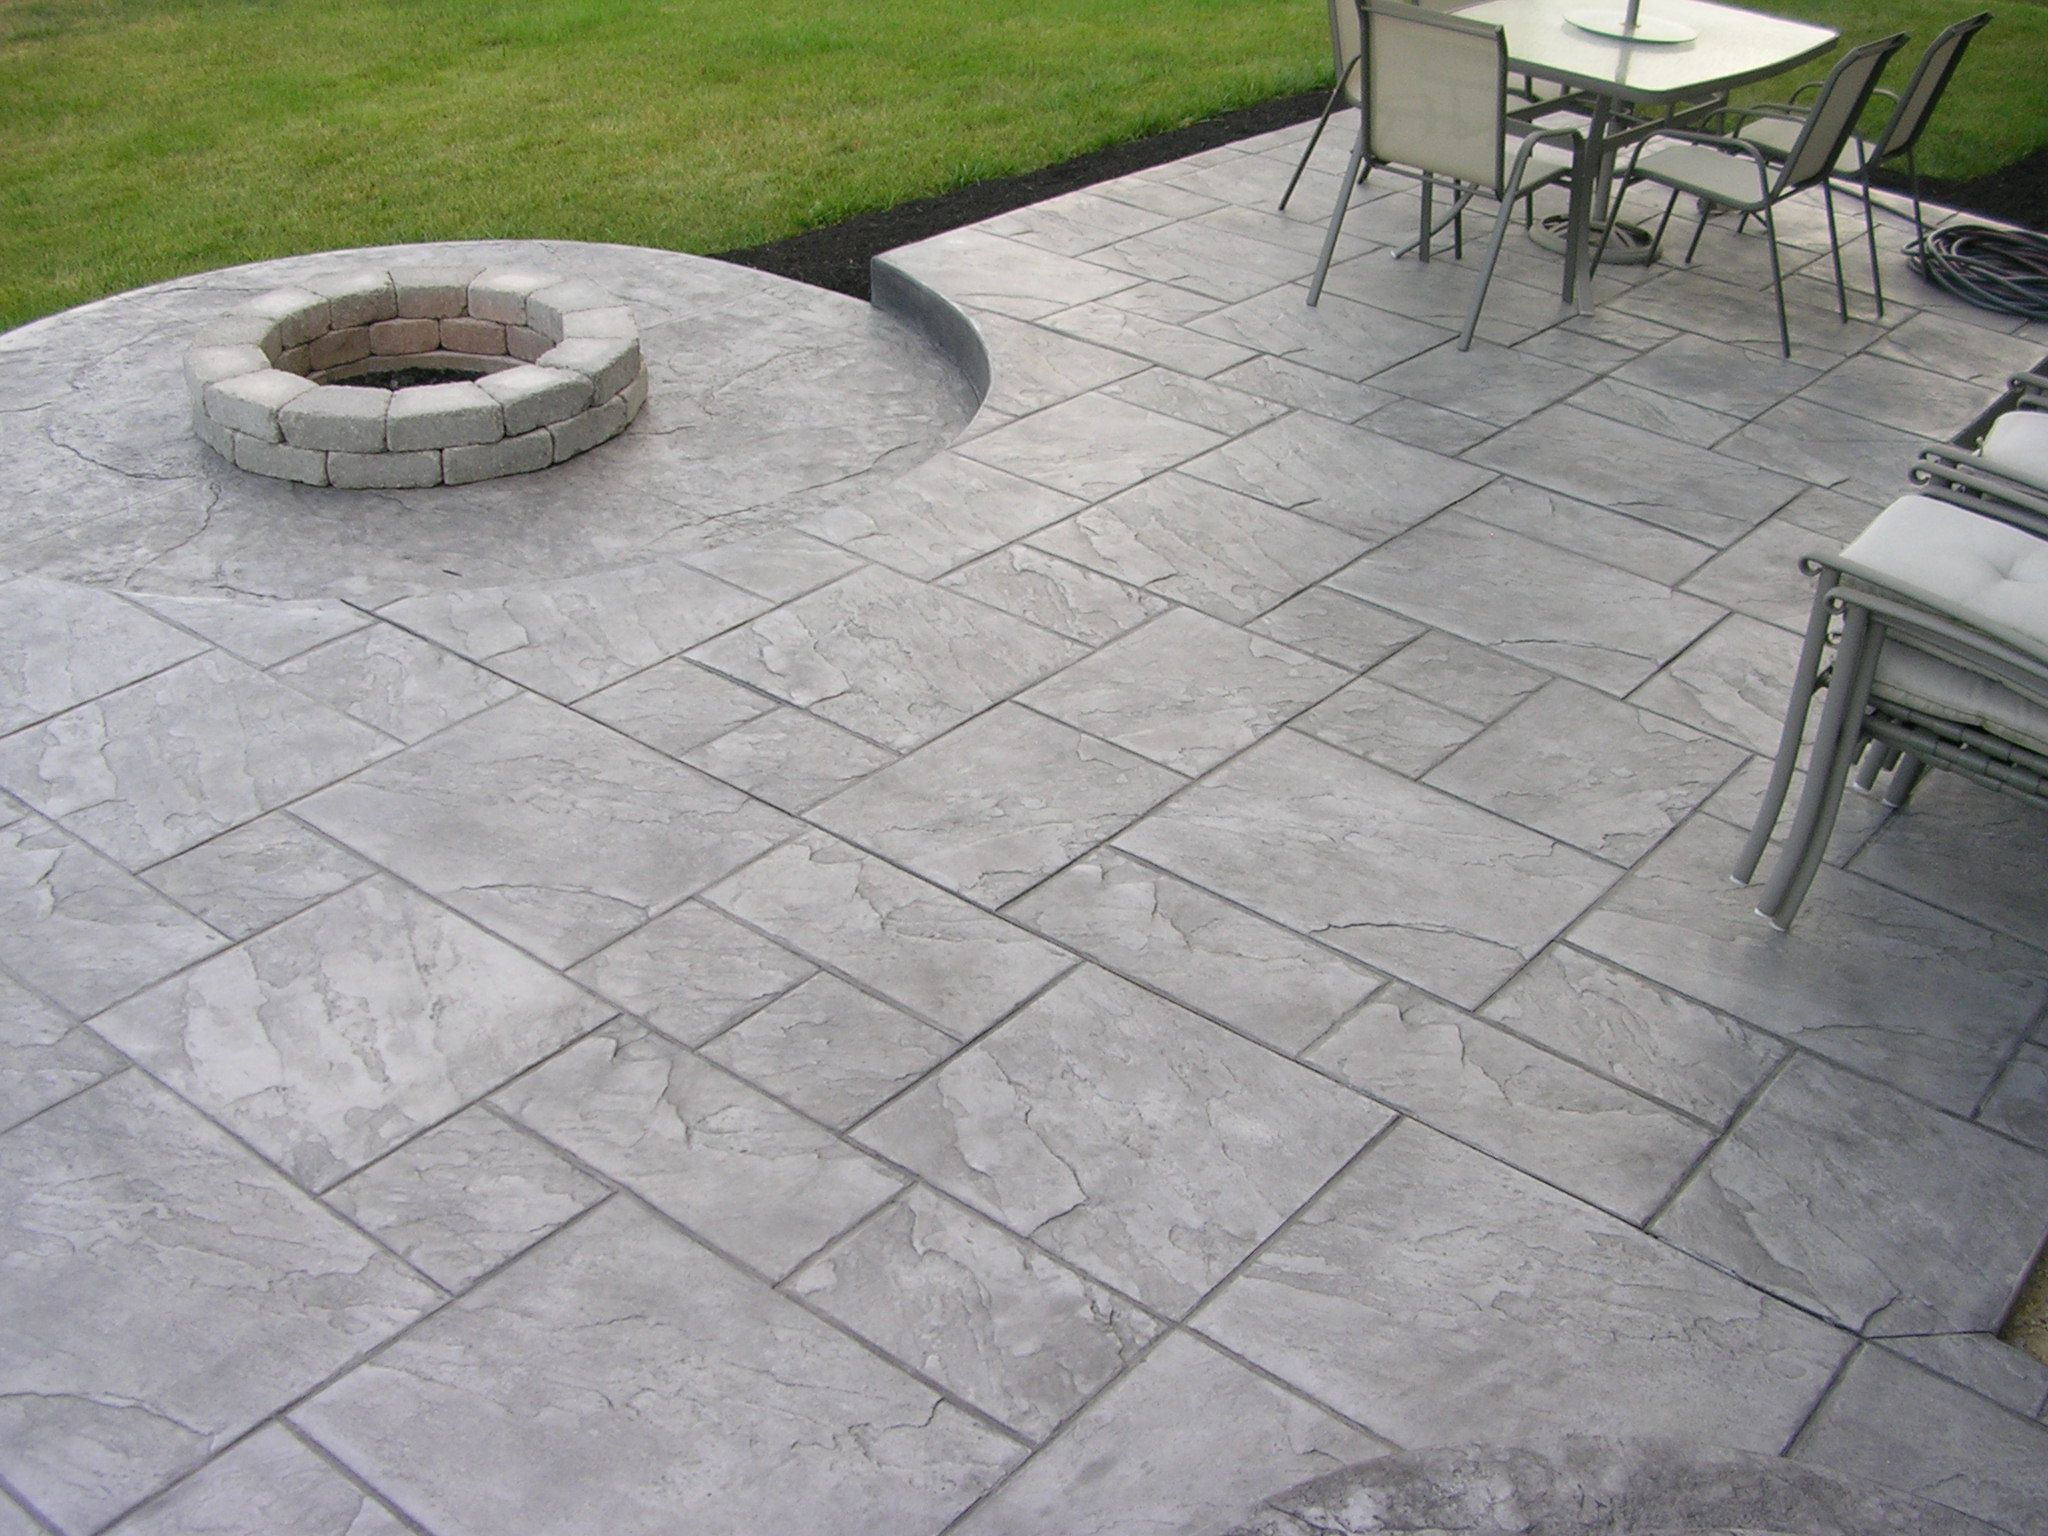 Beautiful Outdoor Patio Flooring Options Include, Stone Tiles, Pavers, And  Stamped Concrete.